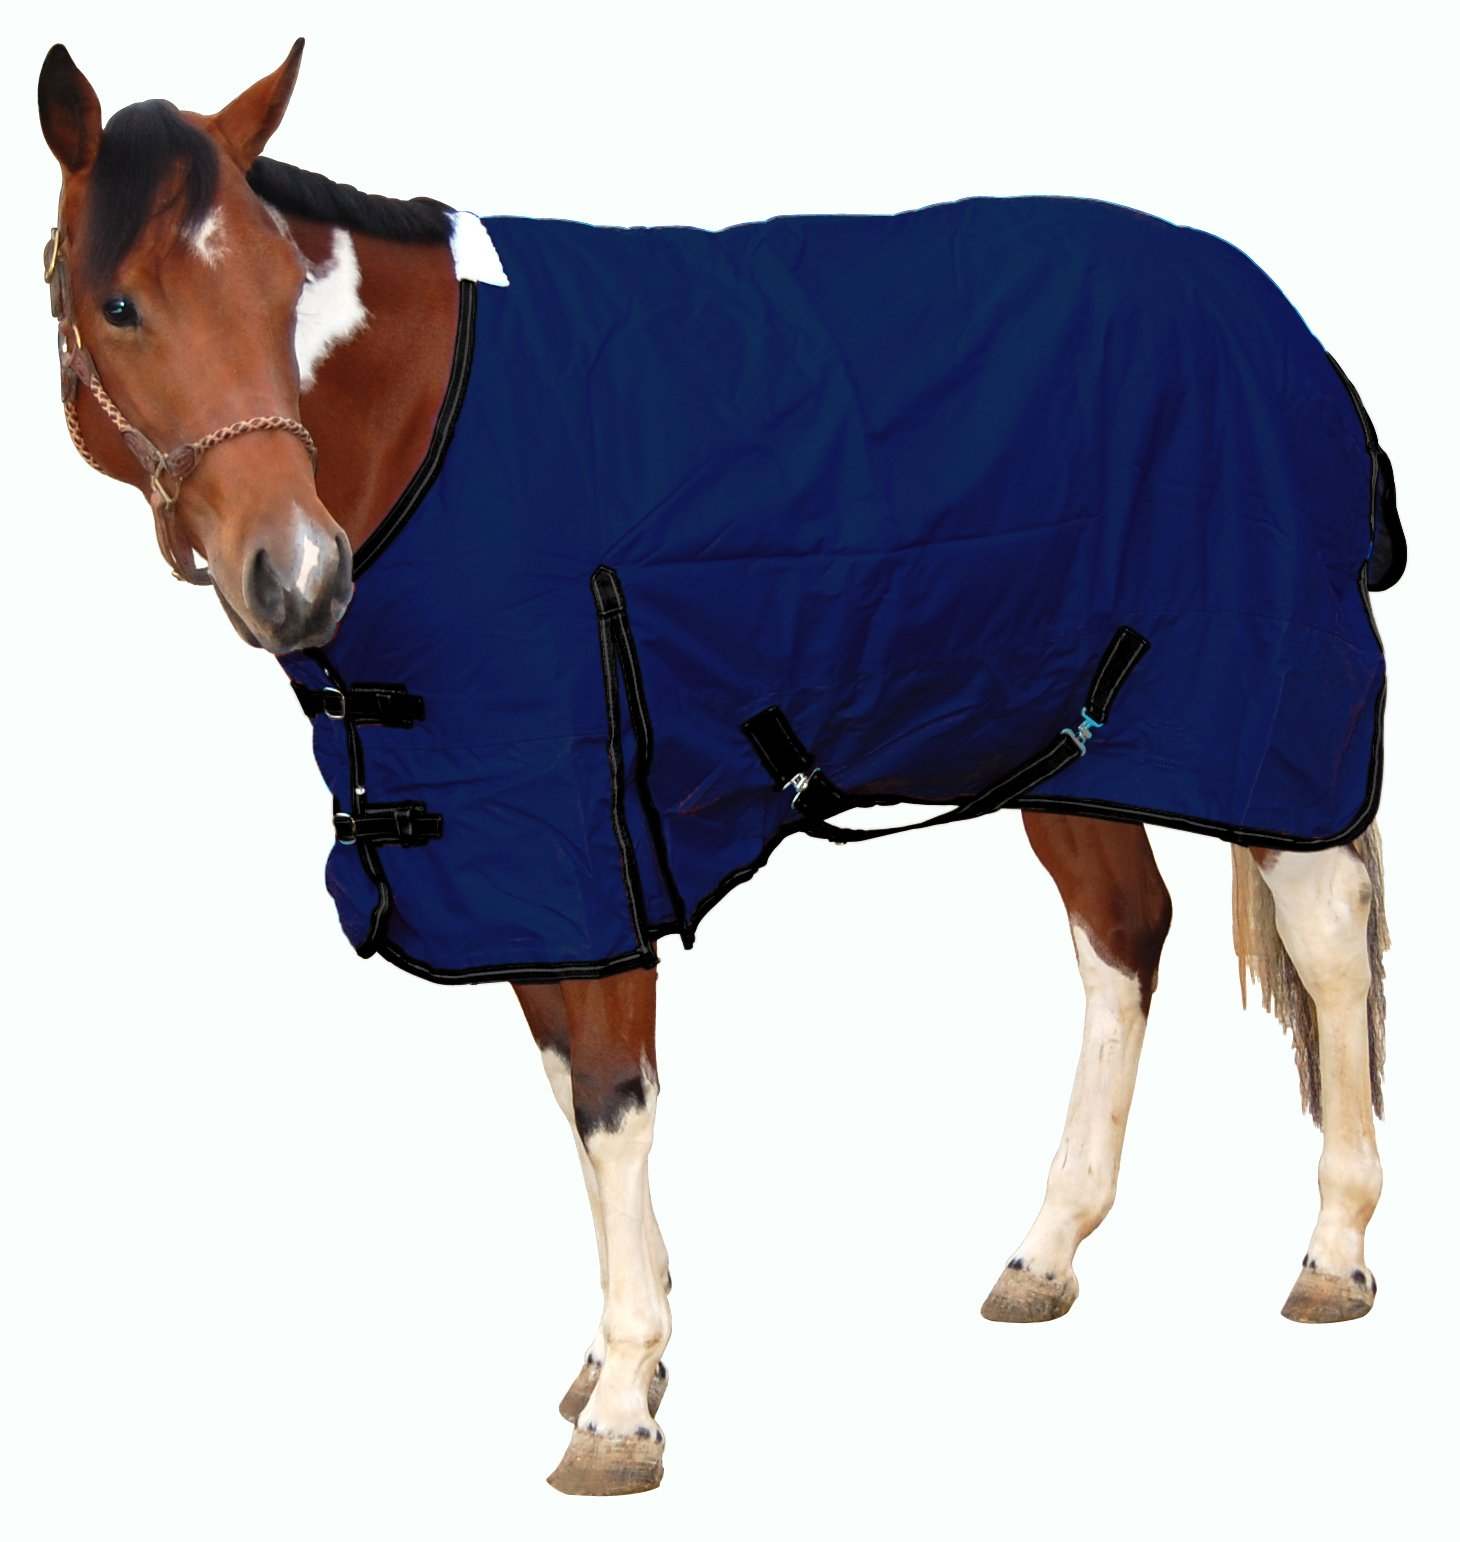 Royal Hamilton WB-600D-NV-L Turnout Horse Blanket Navy Blue with Black Trim, 81-Inch, Large